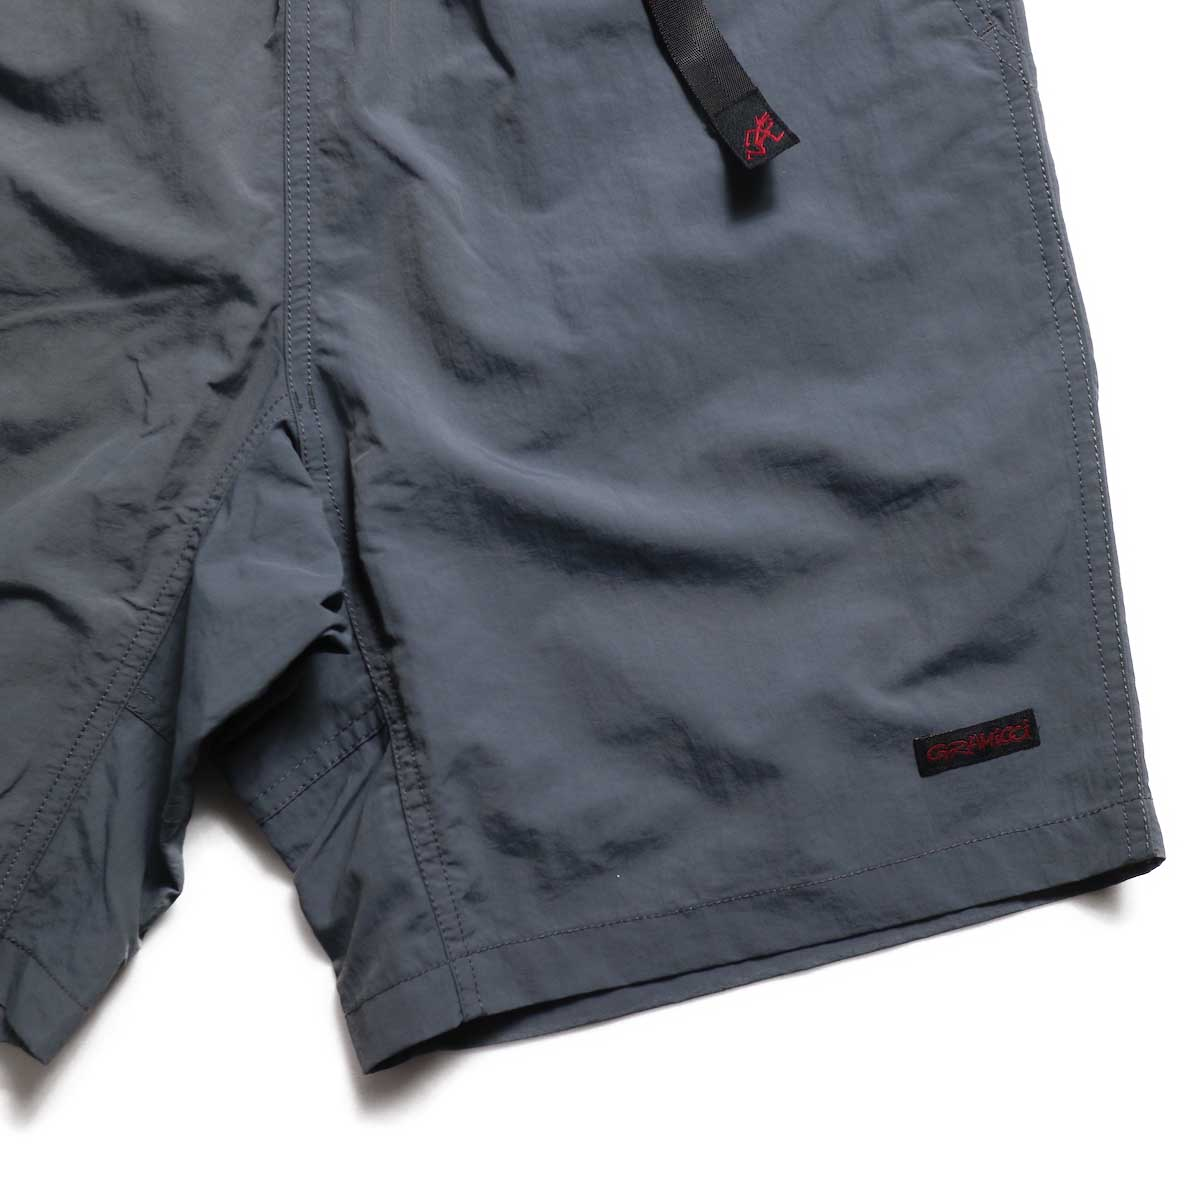 GRAMICCI / Shell Packable Shorts -Charcoal ネームタグ